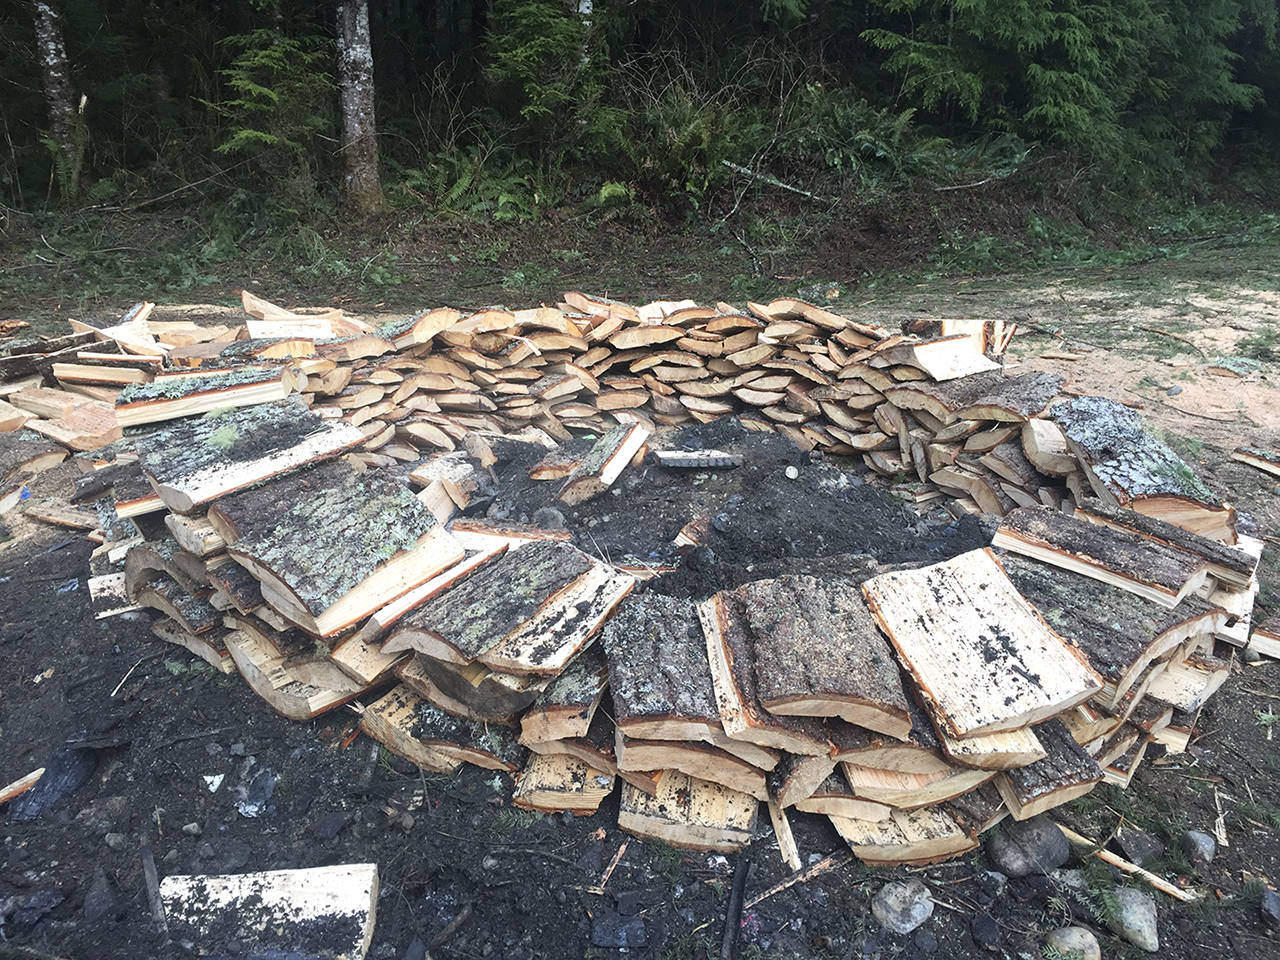 2 Arrested On Suspicion Of Illegally Cutting Down Douglas Fir Trees